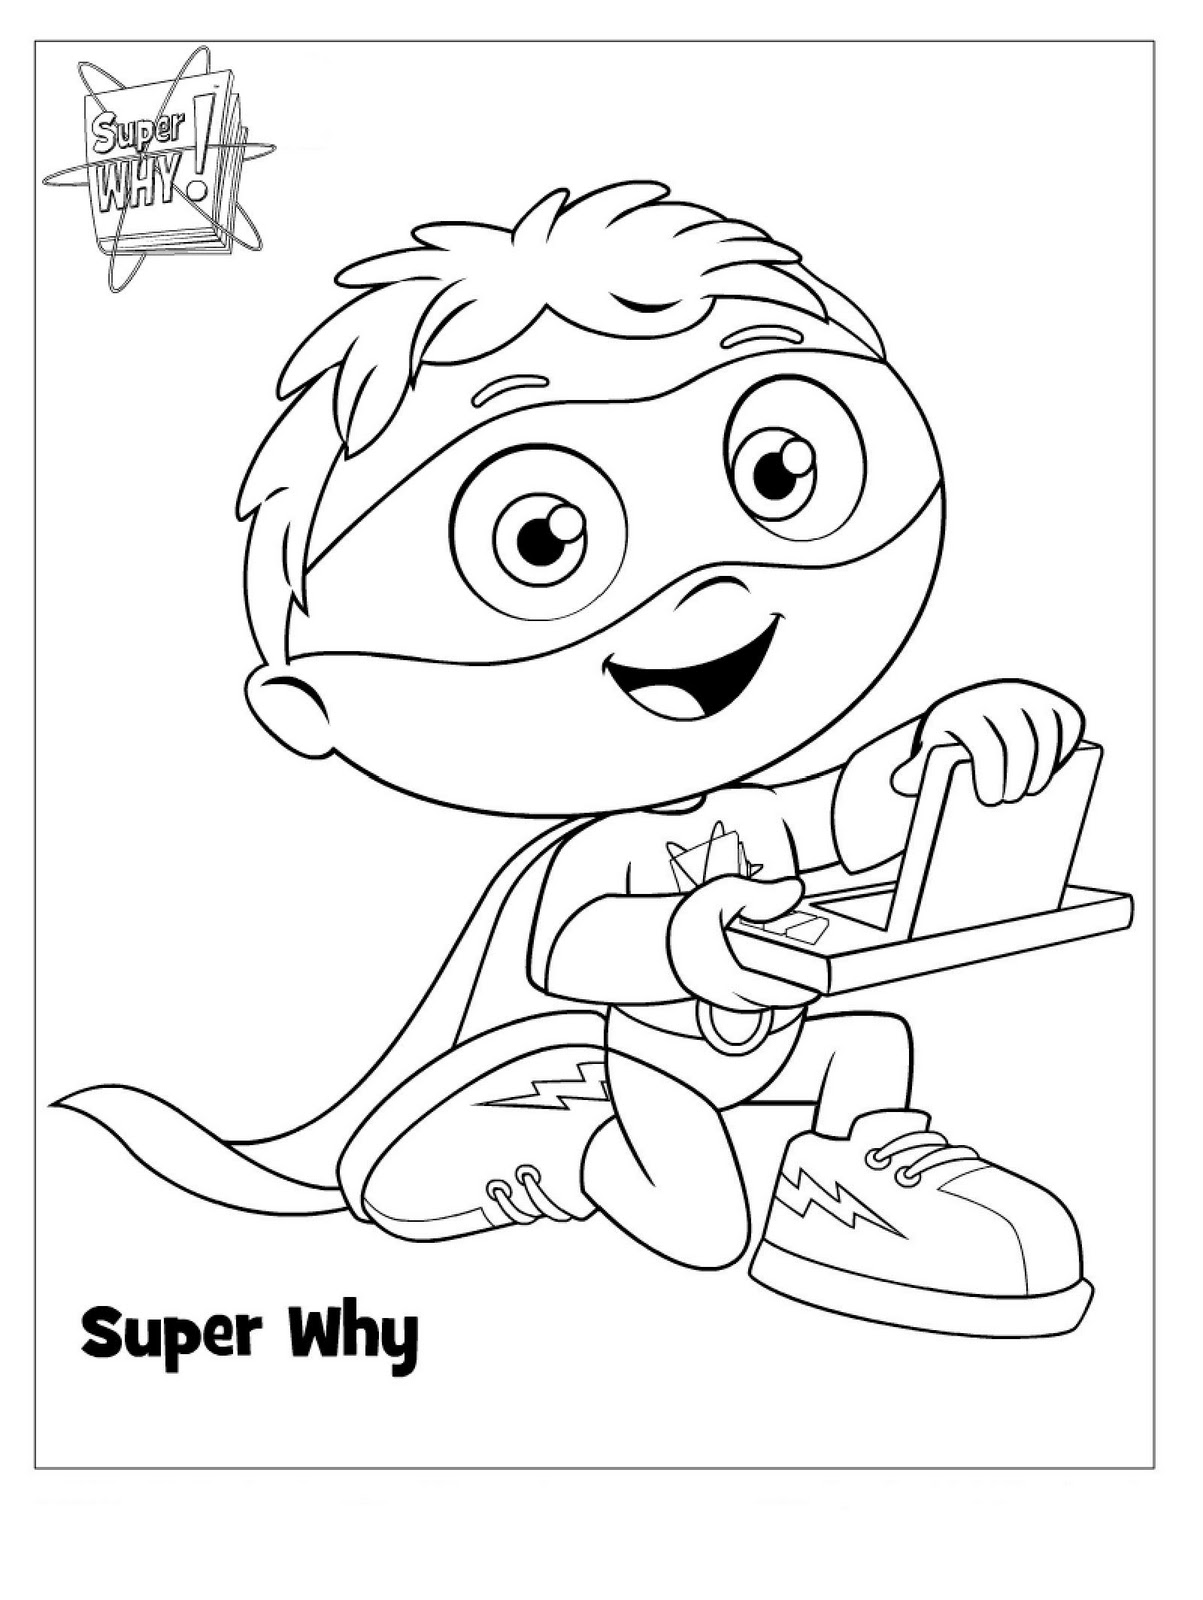 Super Why coloring ~ Child Coloring